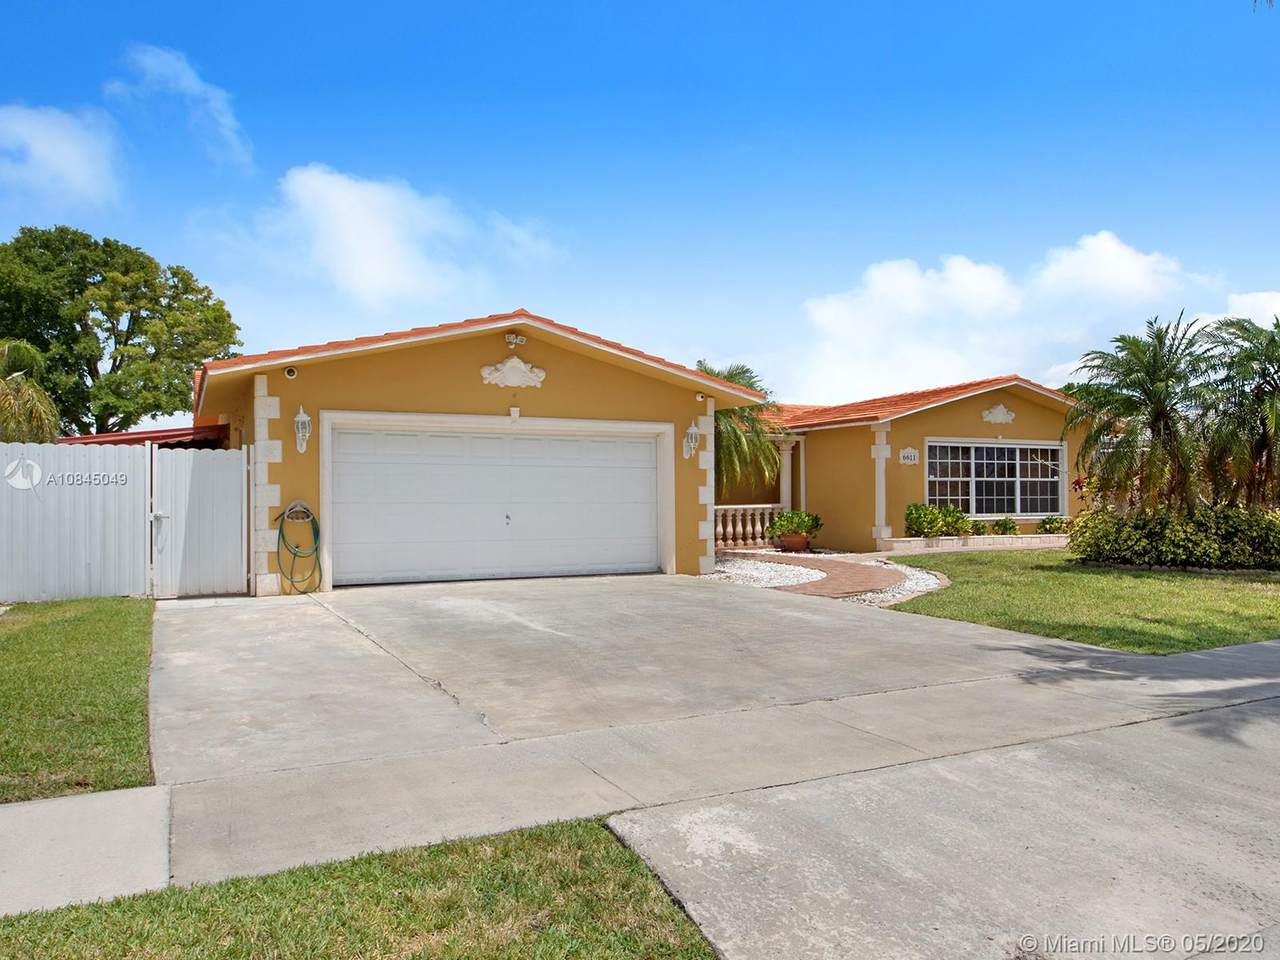 6611 Royal Palm Blvd - Photo 1